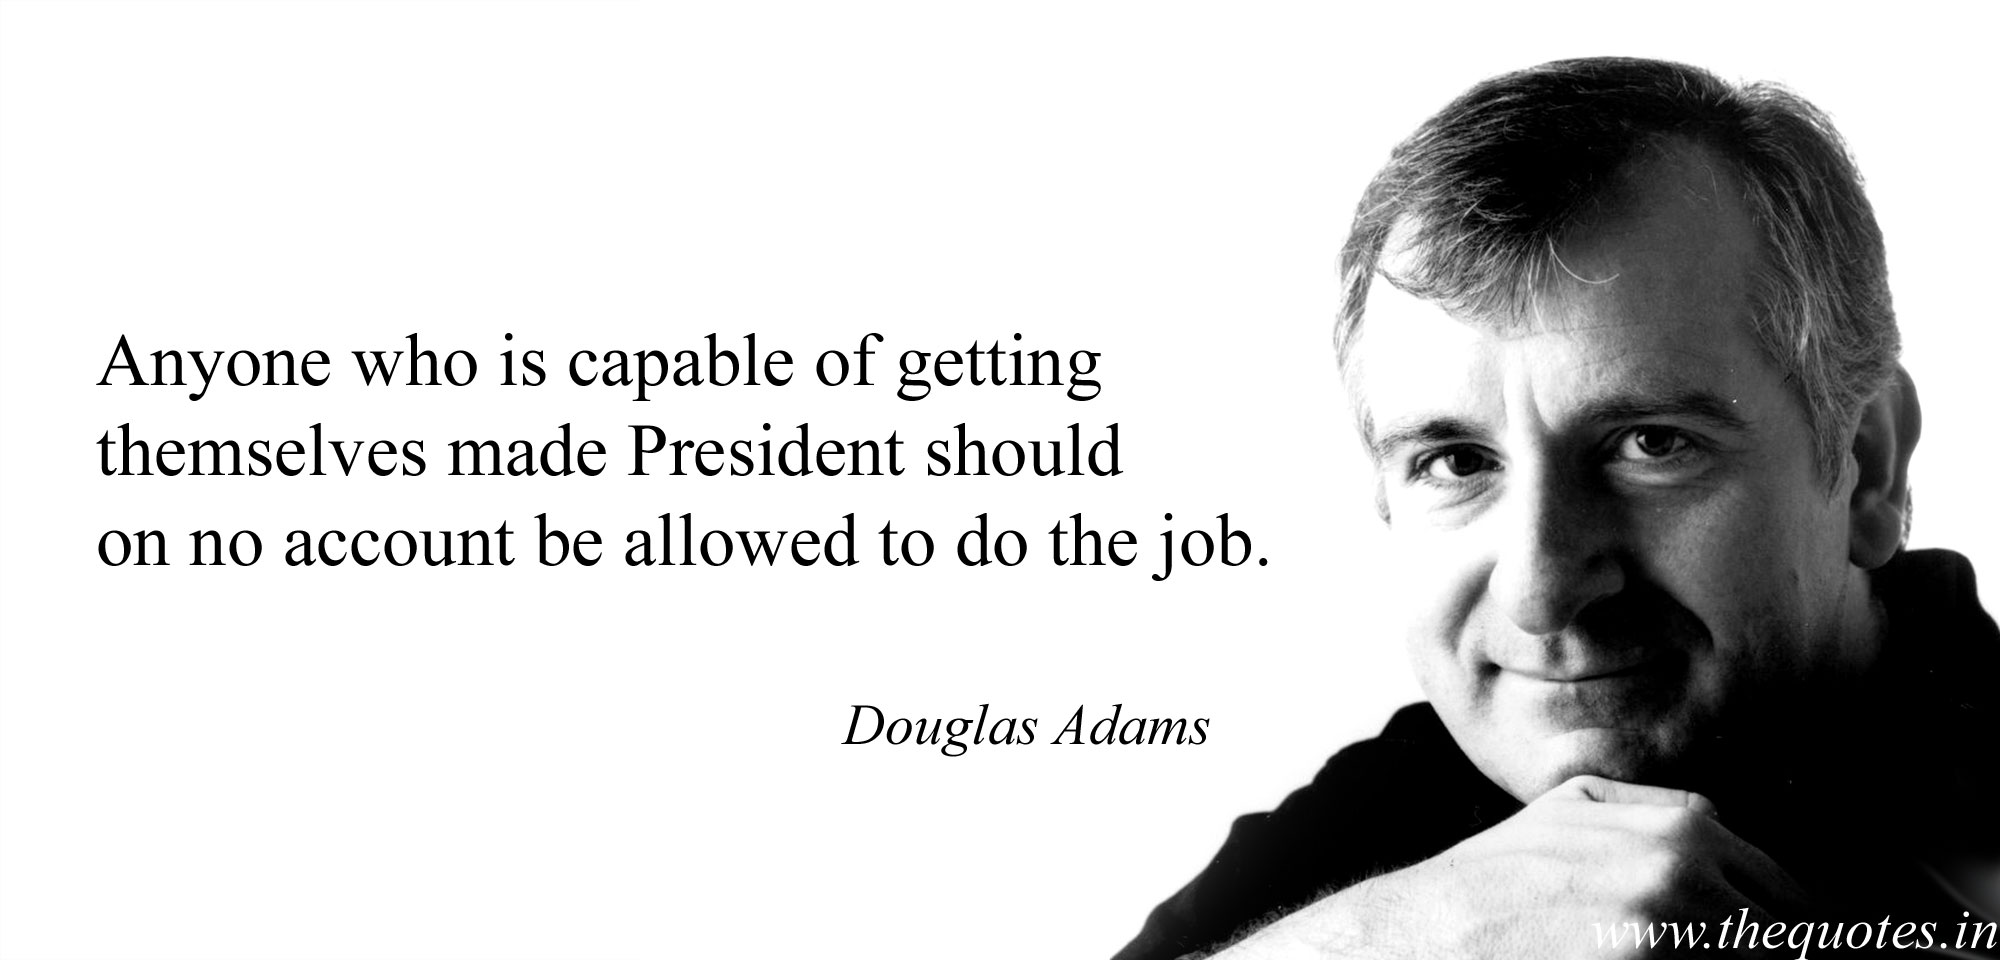 Anyone who is capable of getting themselves made President should on no account be allowed to do the job. Douglas Adams